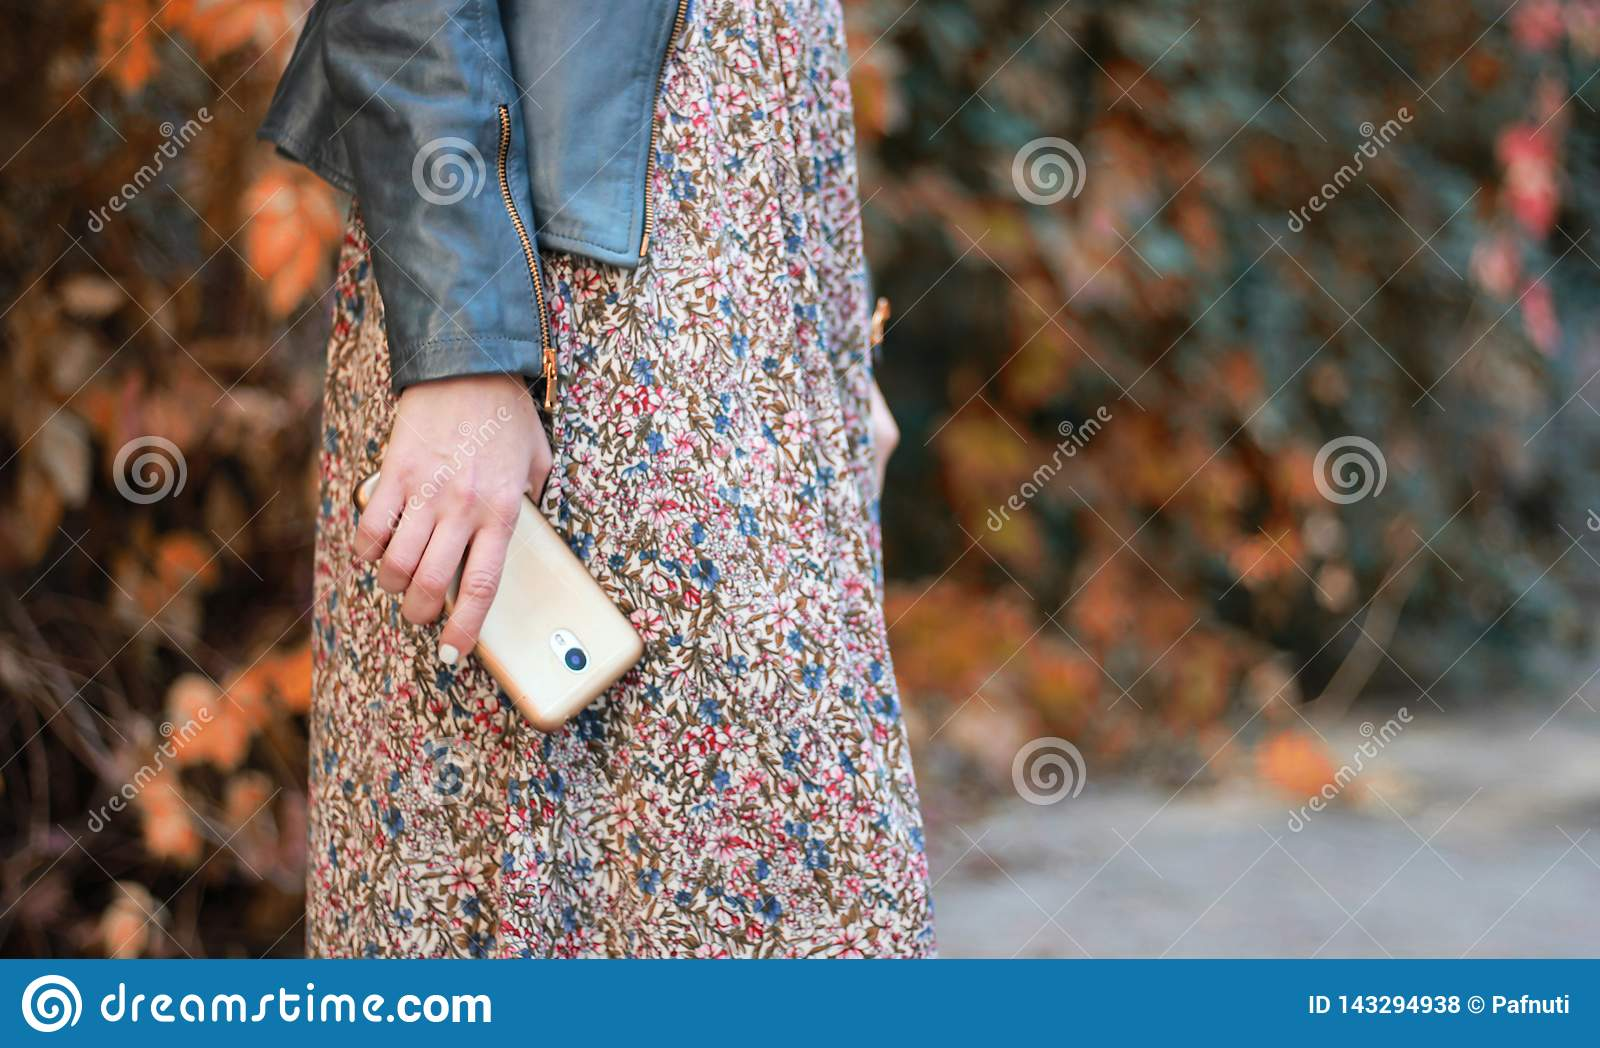 Girl in the dress holds the phone